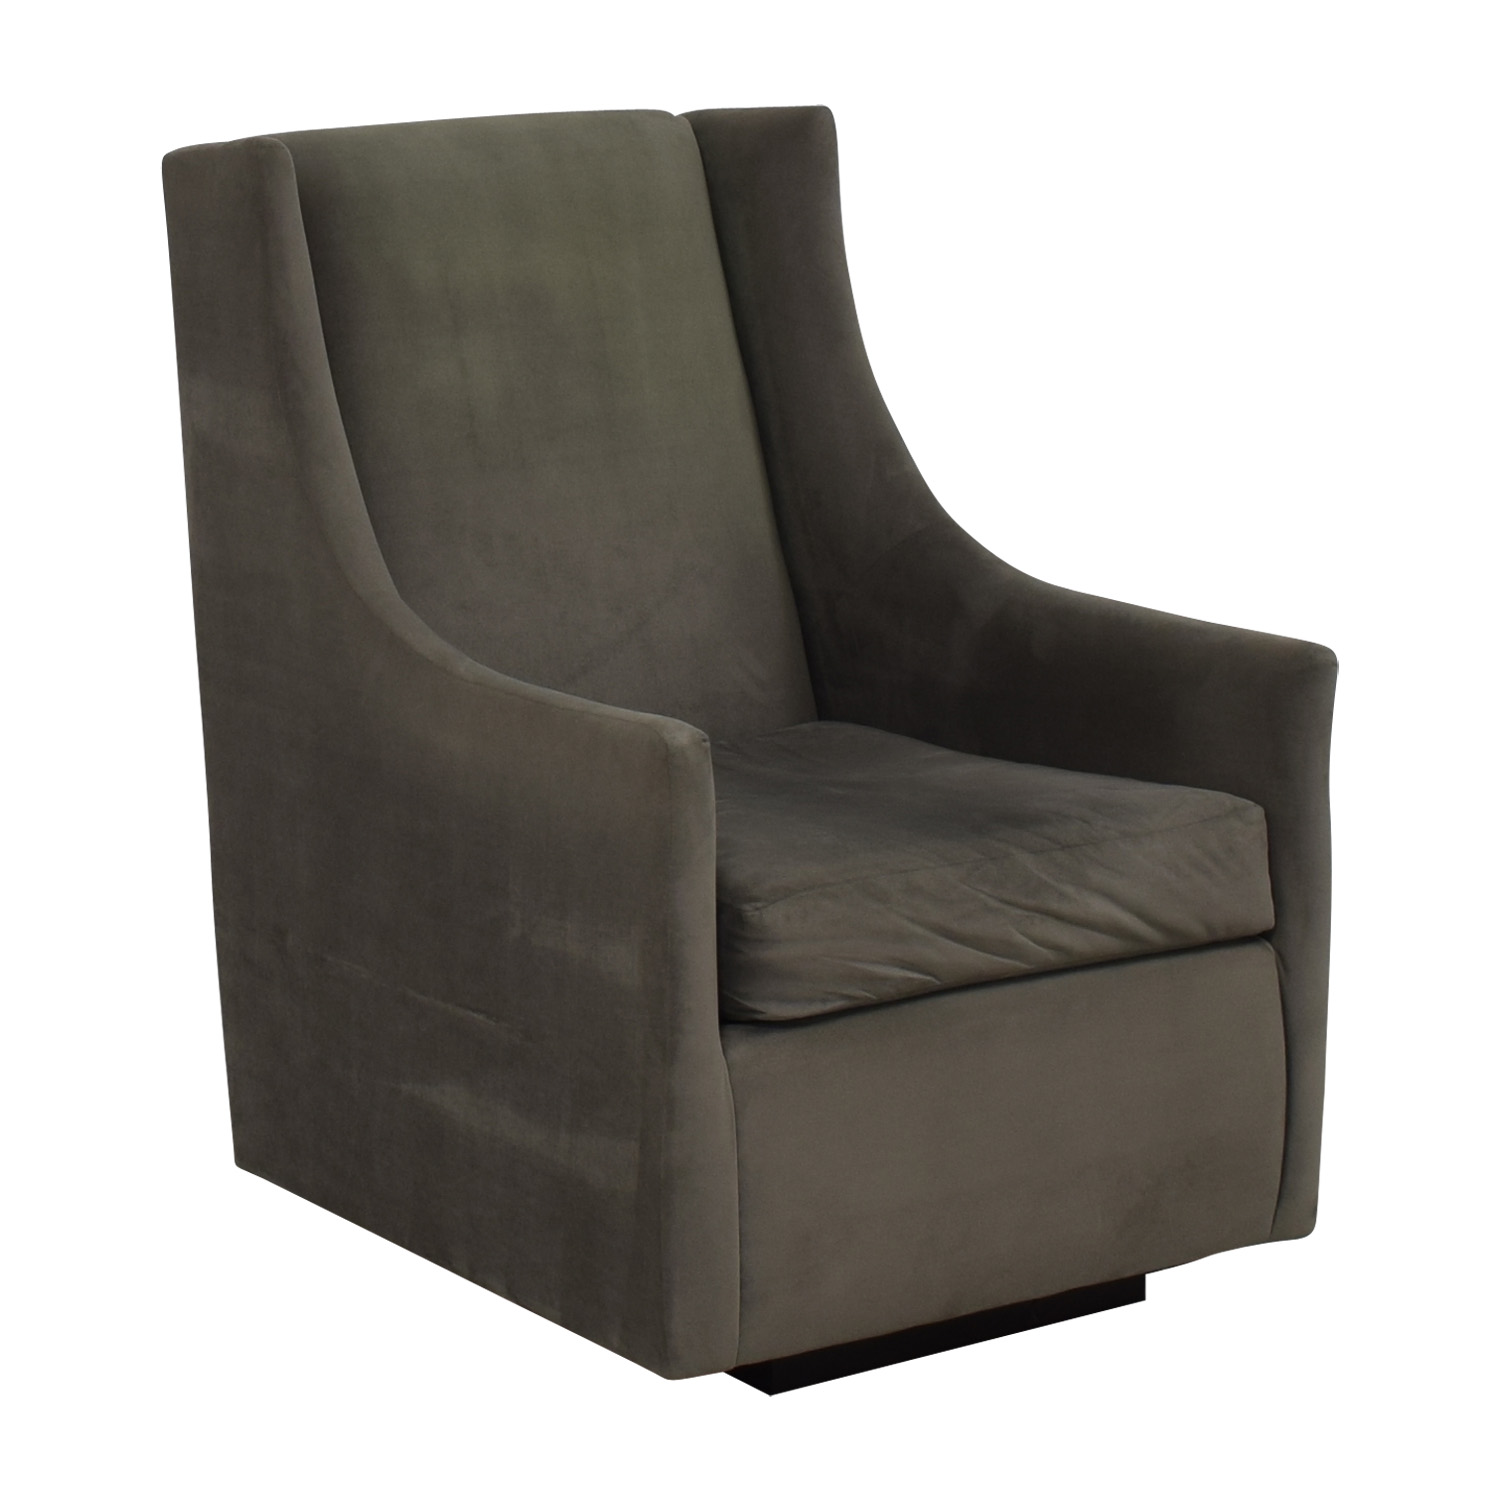 West Elm Graham Glider with Ottoman sale